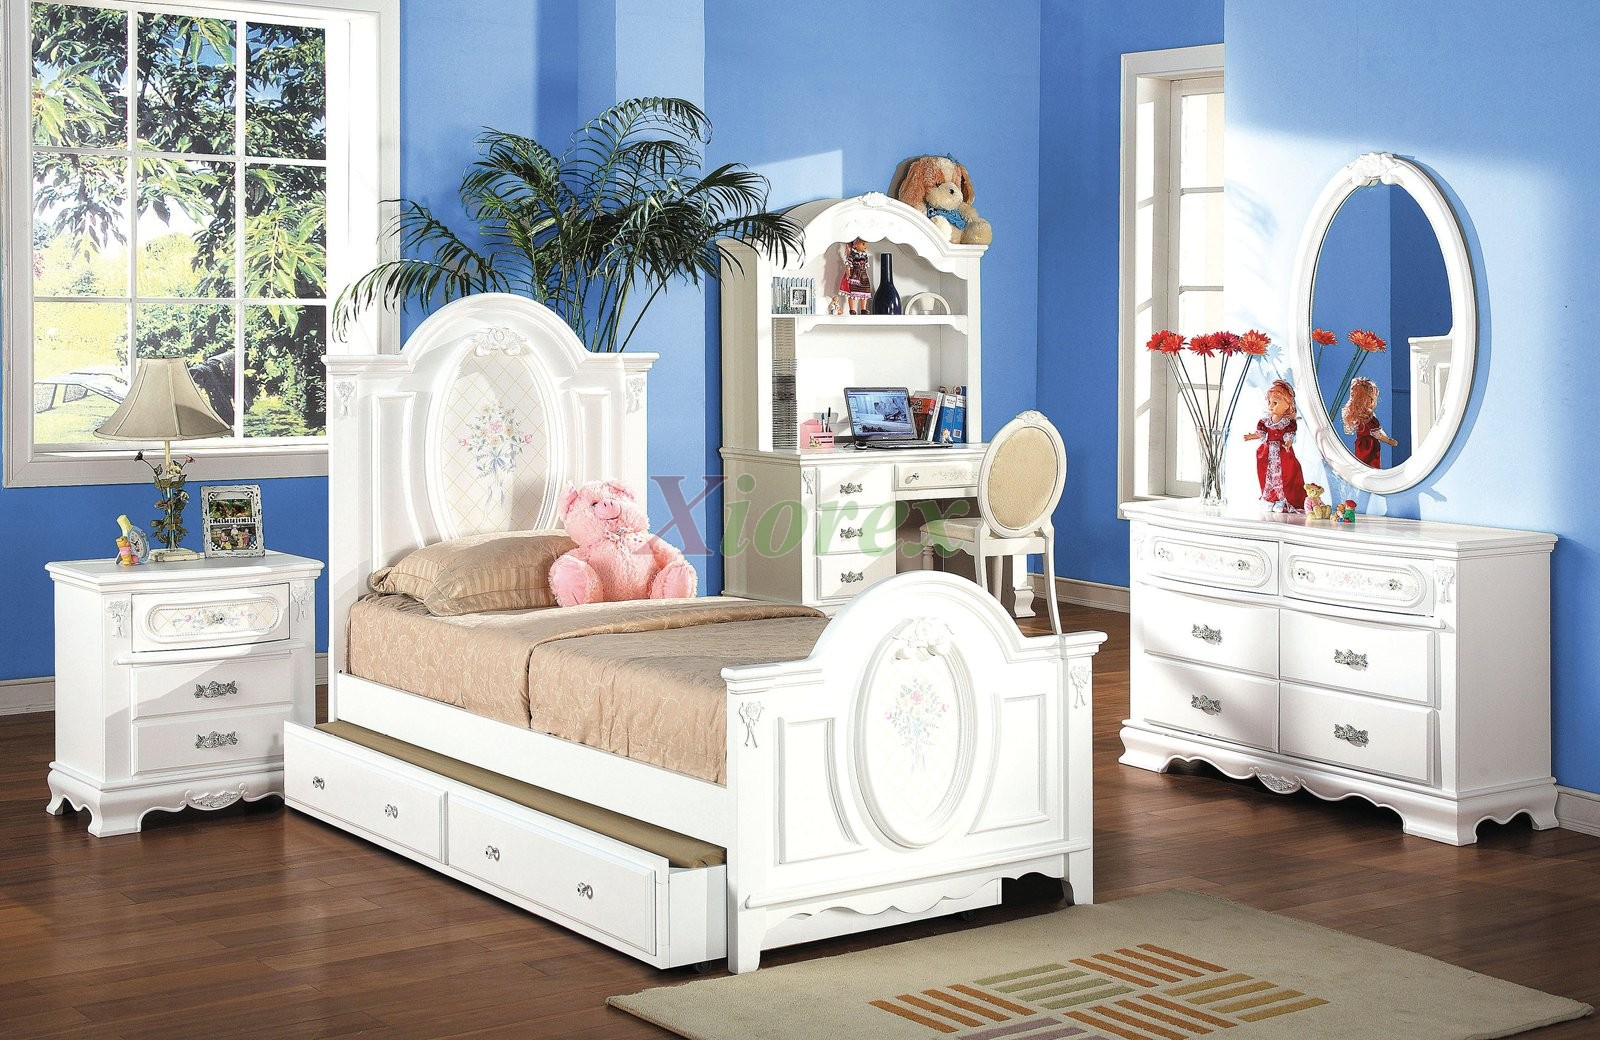 Kids Bedroom Furniture Set With Trundle Bed And Hutch 174 Xiorex